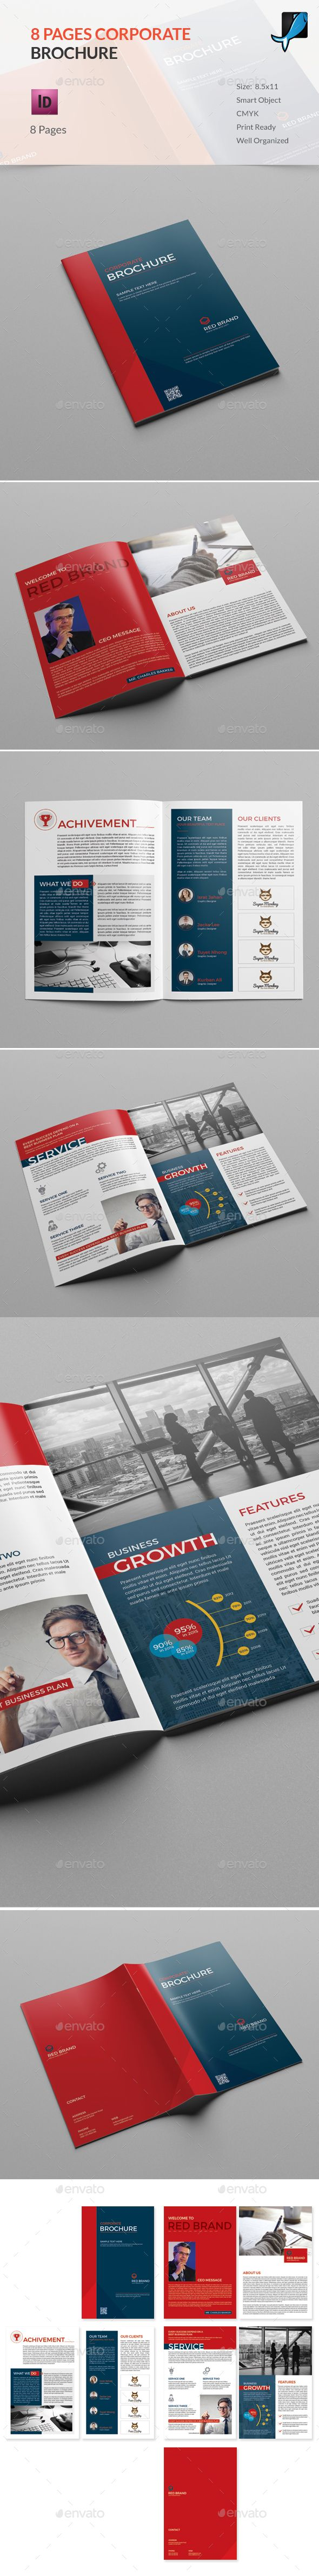 8 Pages InDesign Brochure Template